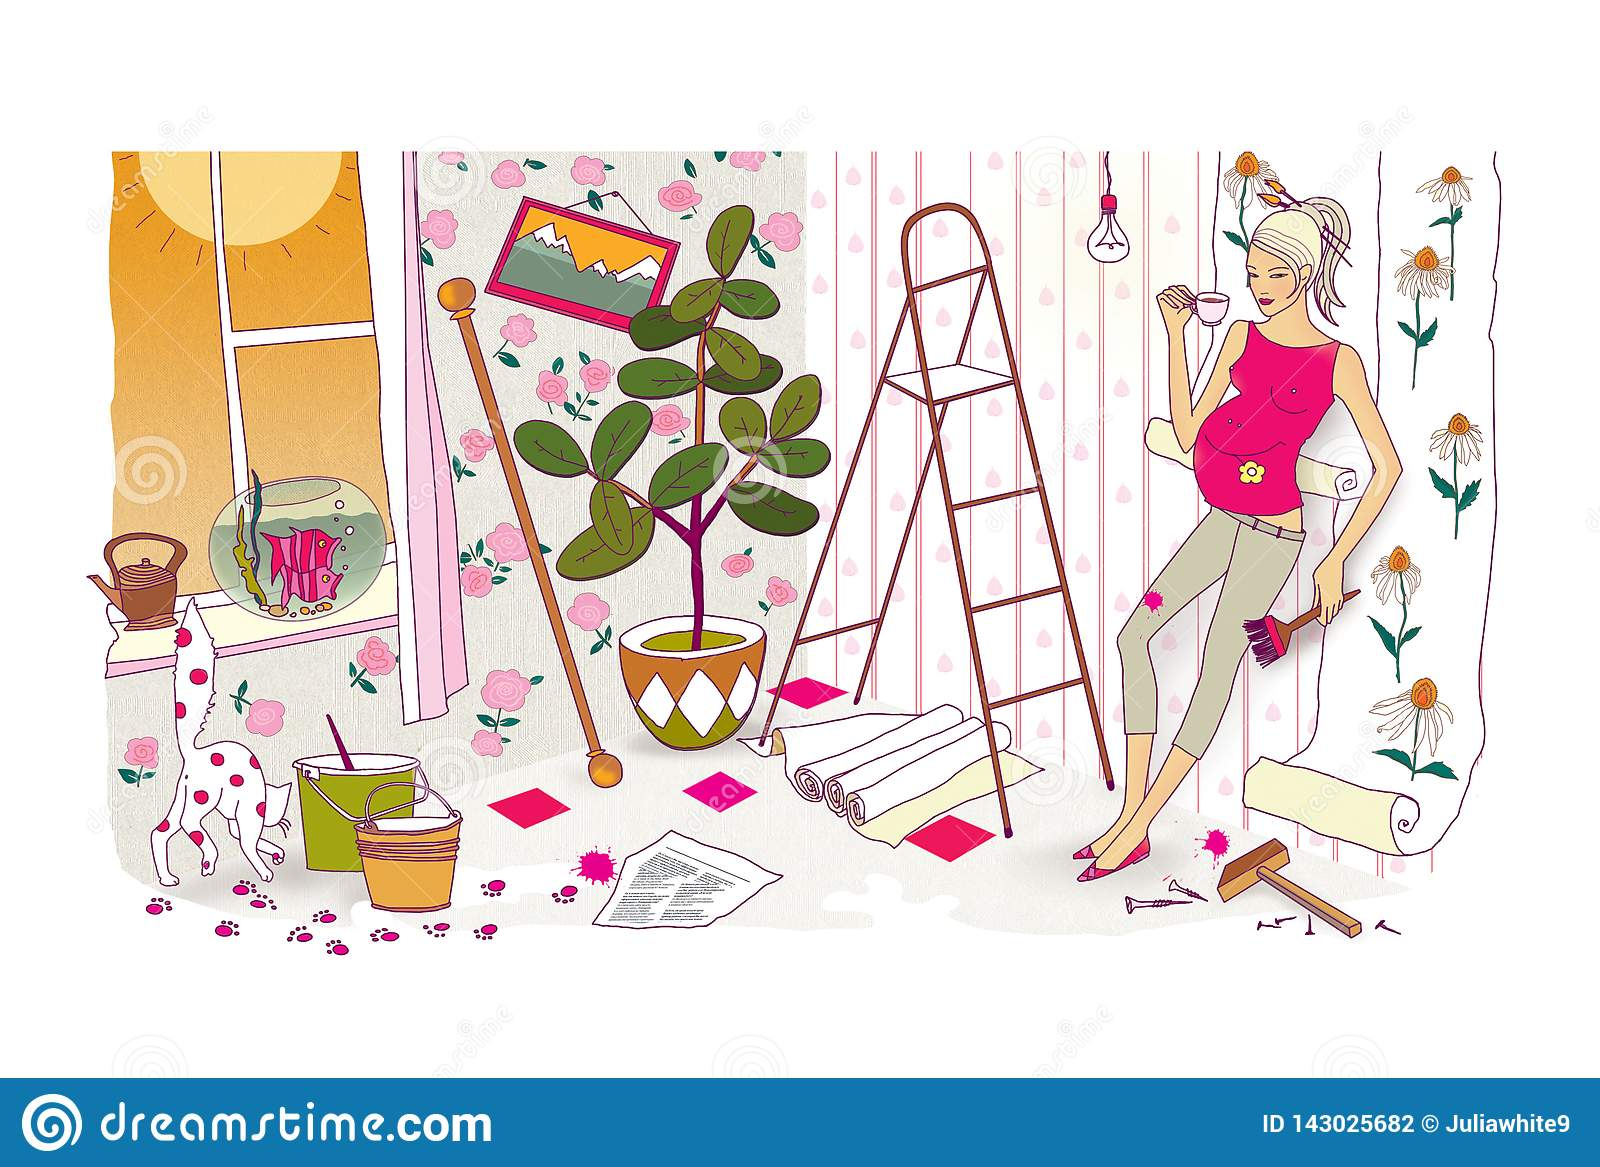 Last preparations before the birth of a child. A pregnant woman with a huge belly does repairs and re-glues the wallpaper. Chaos